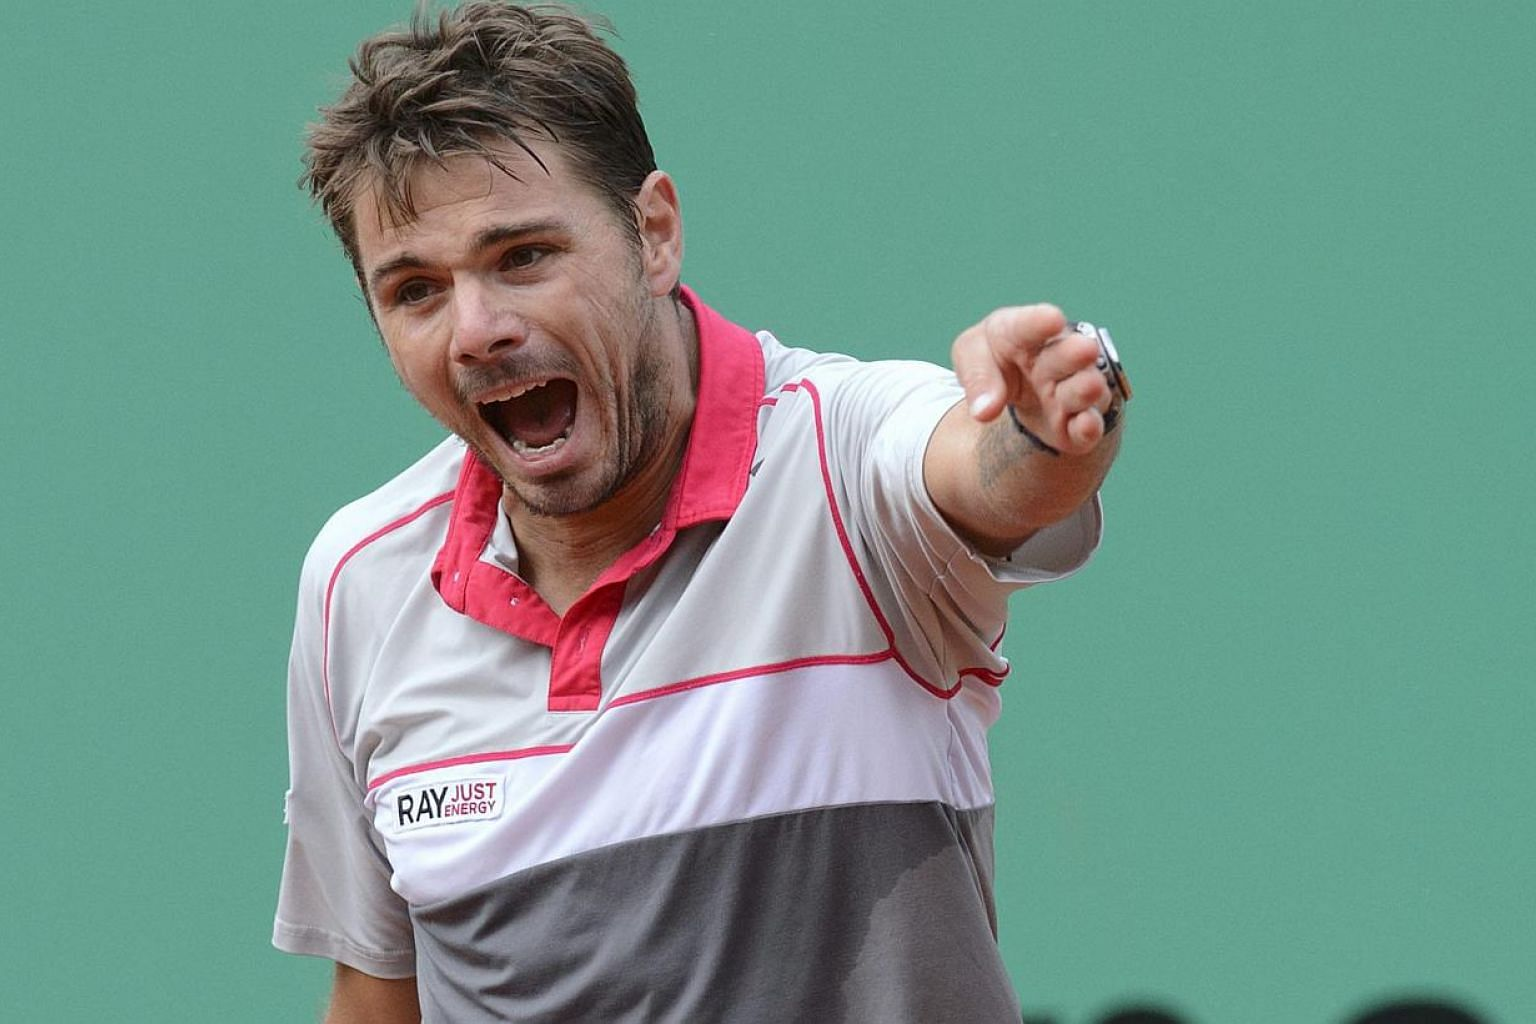 Switzerland's Stan Wawrinka reacts after losing a point to Lukas Rosol of the Czech Republic in the Geneva Open on May 20, 2015. -- PHOTO: EPA